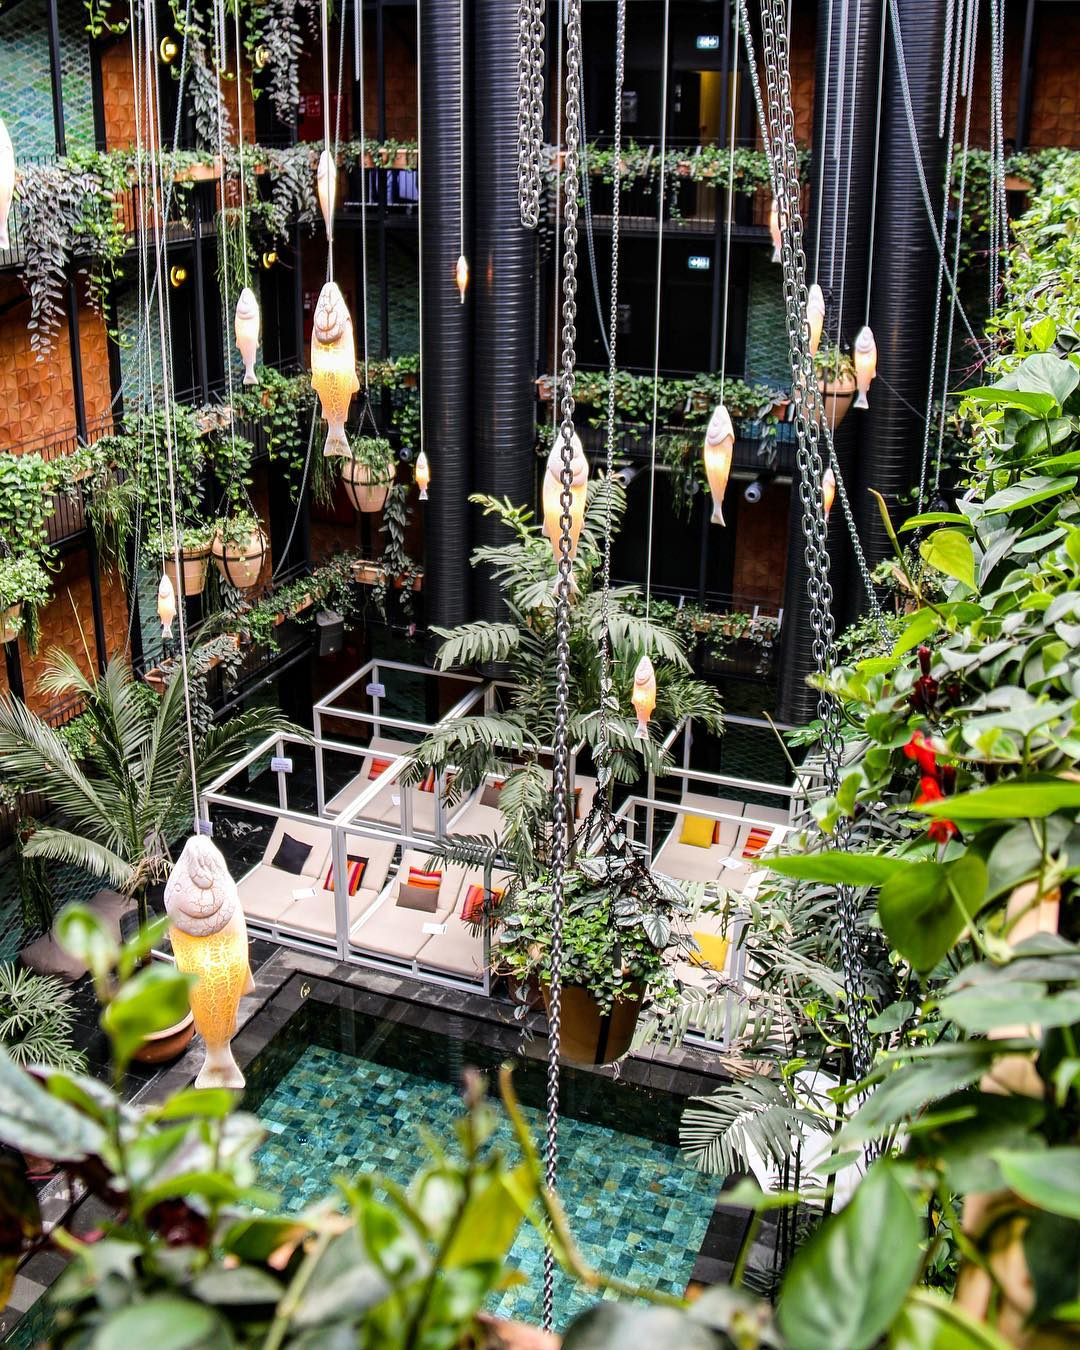 #tbt to coming across a jungle oasis at the @guldsmedenho...